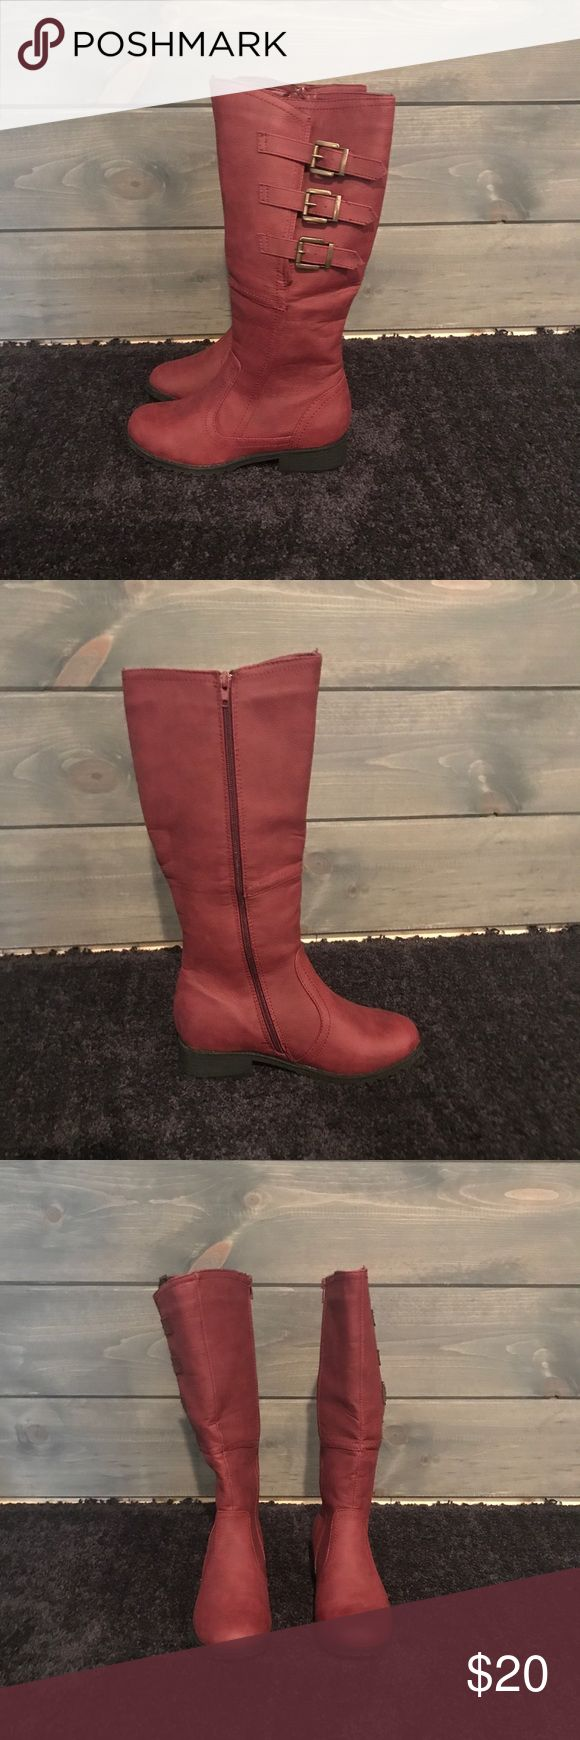 NWOT Red Boots Brand new red zip up boots with  decorative buckles on the side. Have a purple/maroon tint. Never worn. Just didn't fit. I ❤️ offers! Shoes